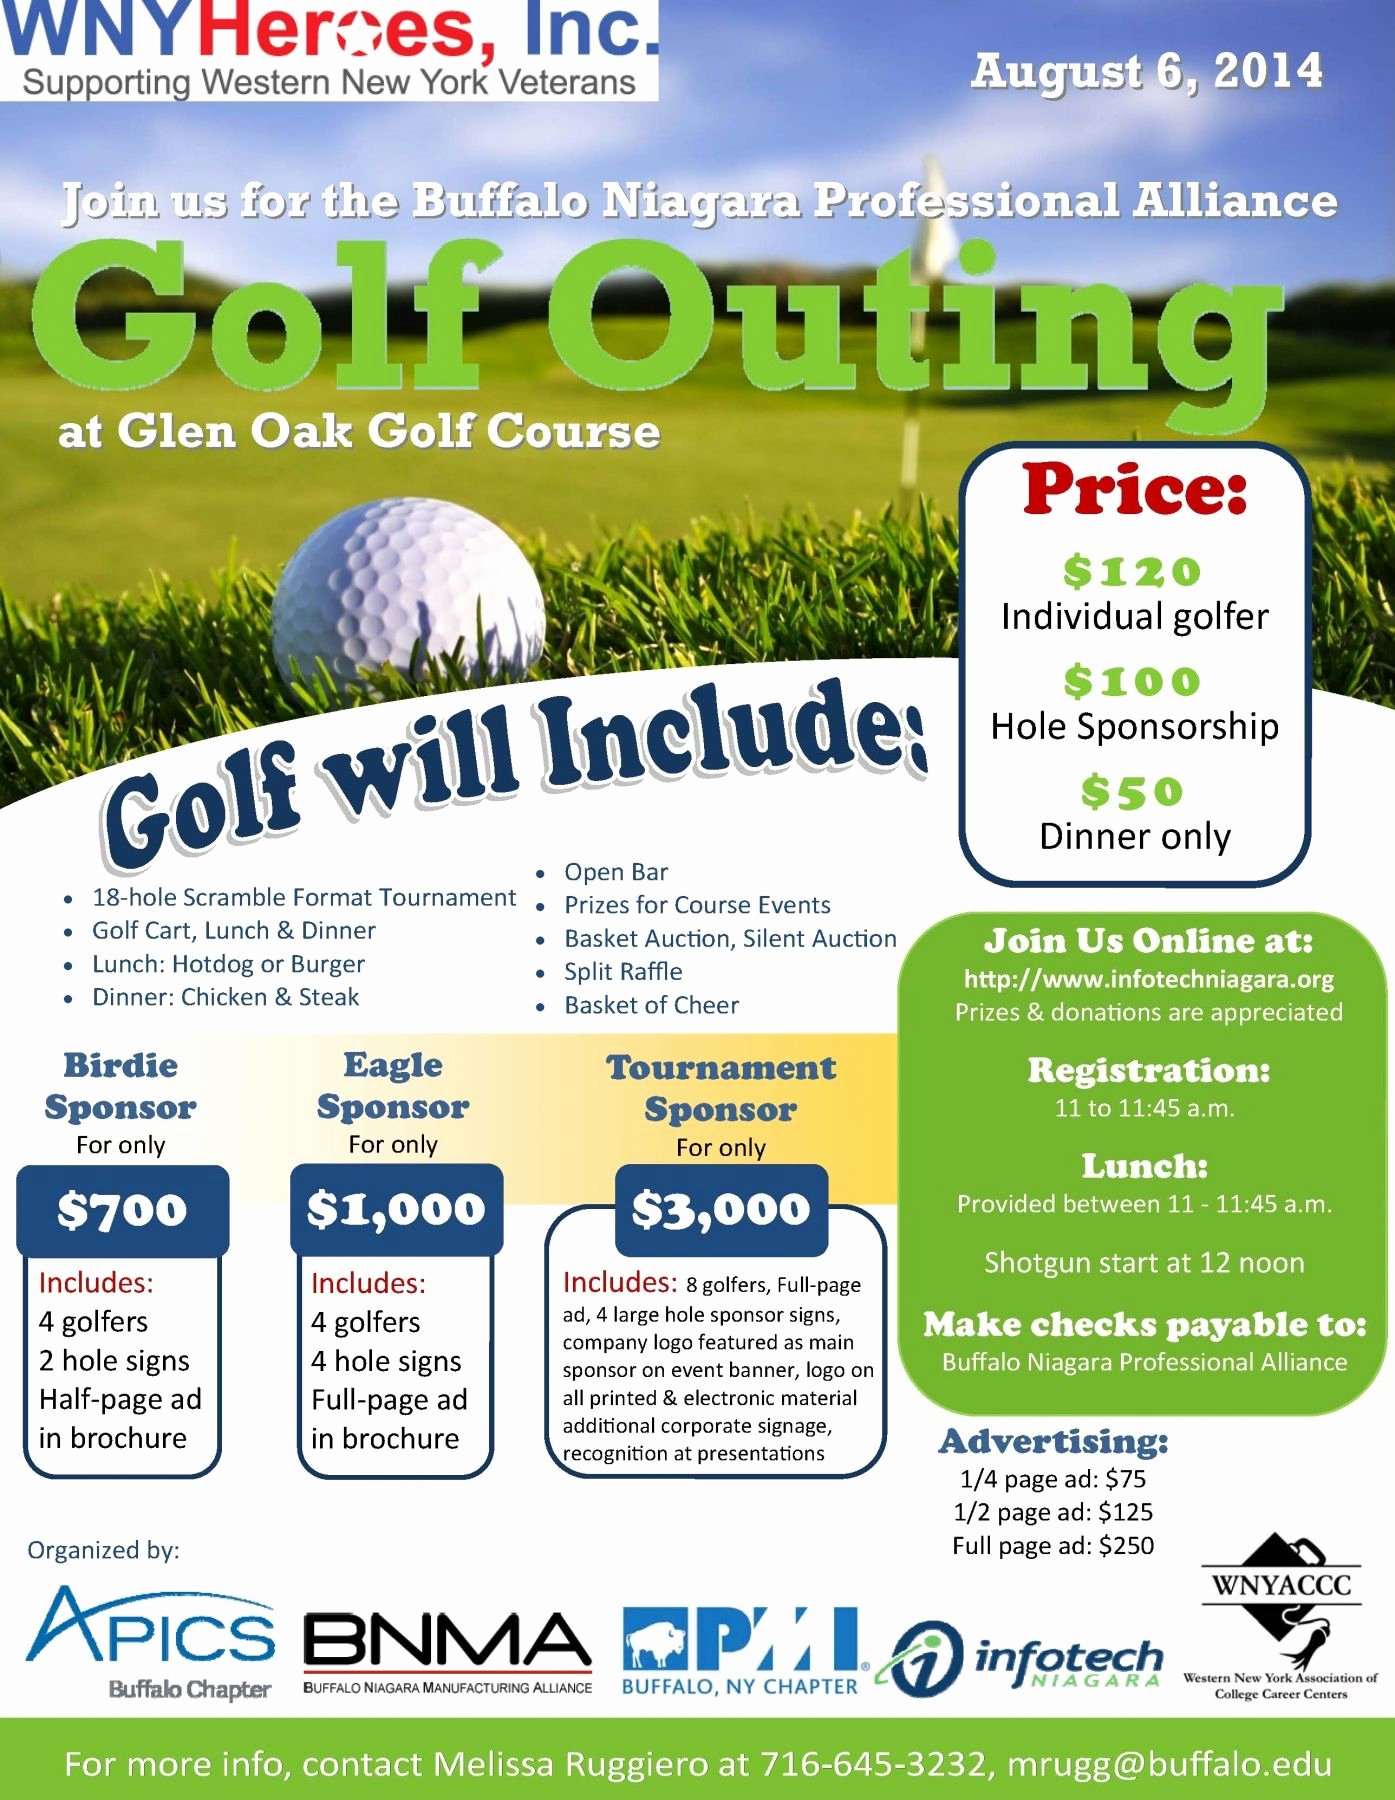 Golf Outing Flyer Template Fresh Wny Heroes Inc Golf tournament Glen Oak Flyer Ideas Templates